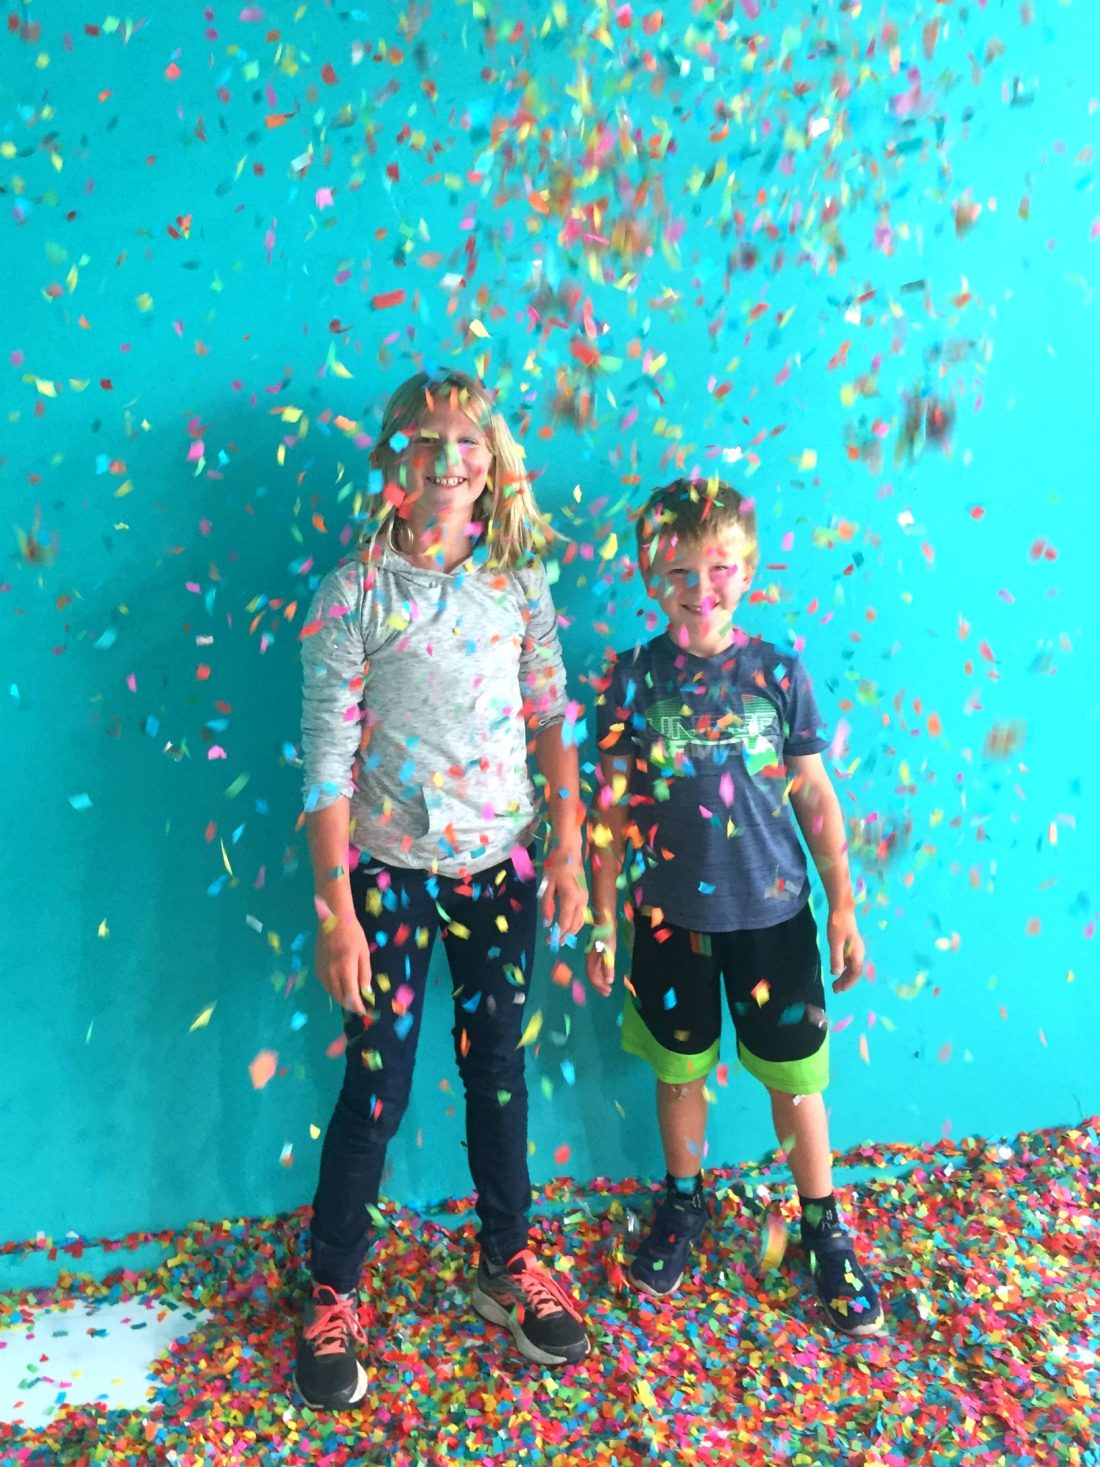 The Confetti Room was one of our favorites